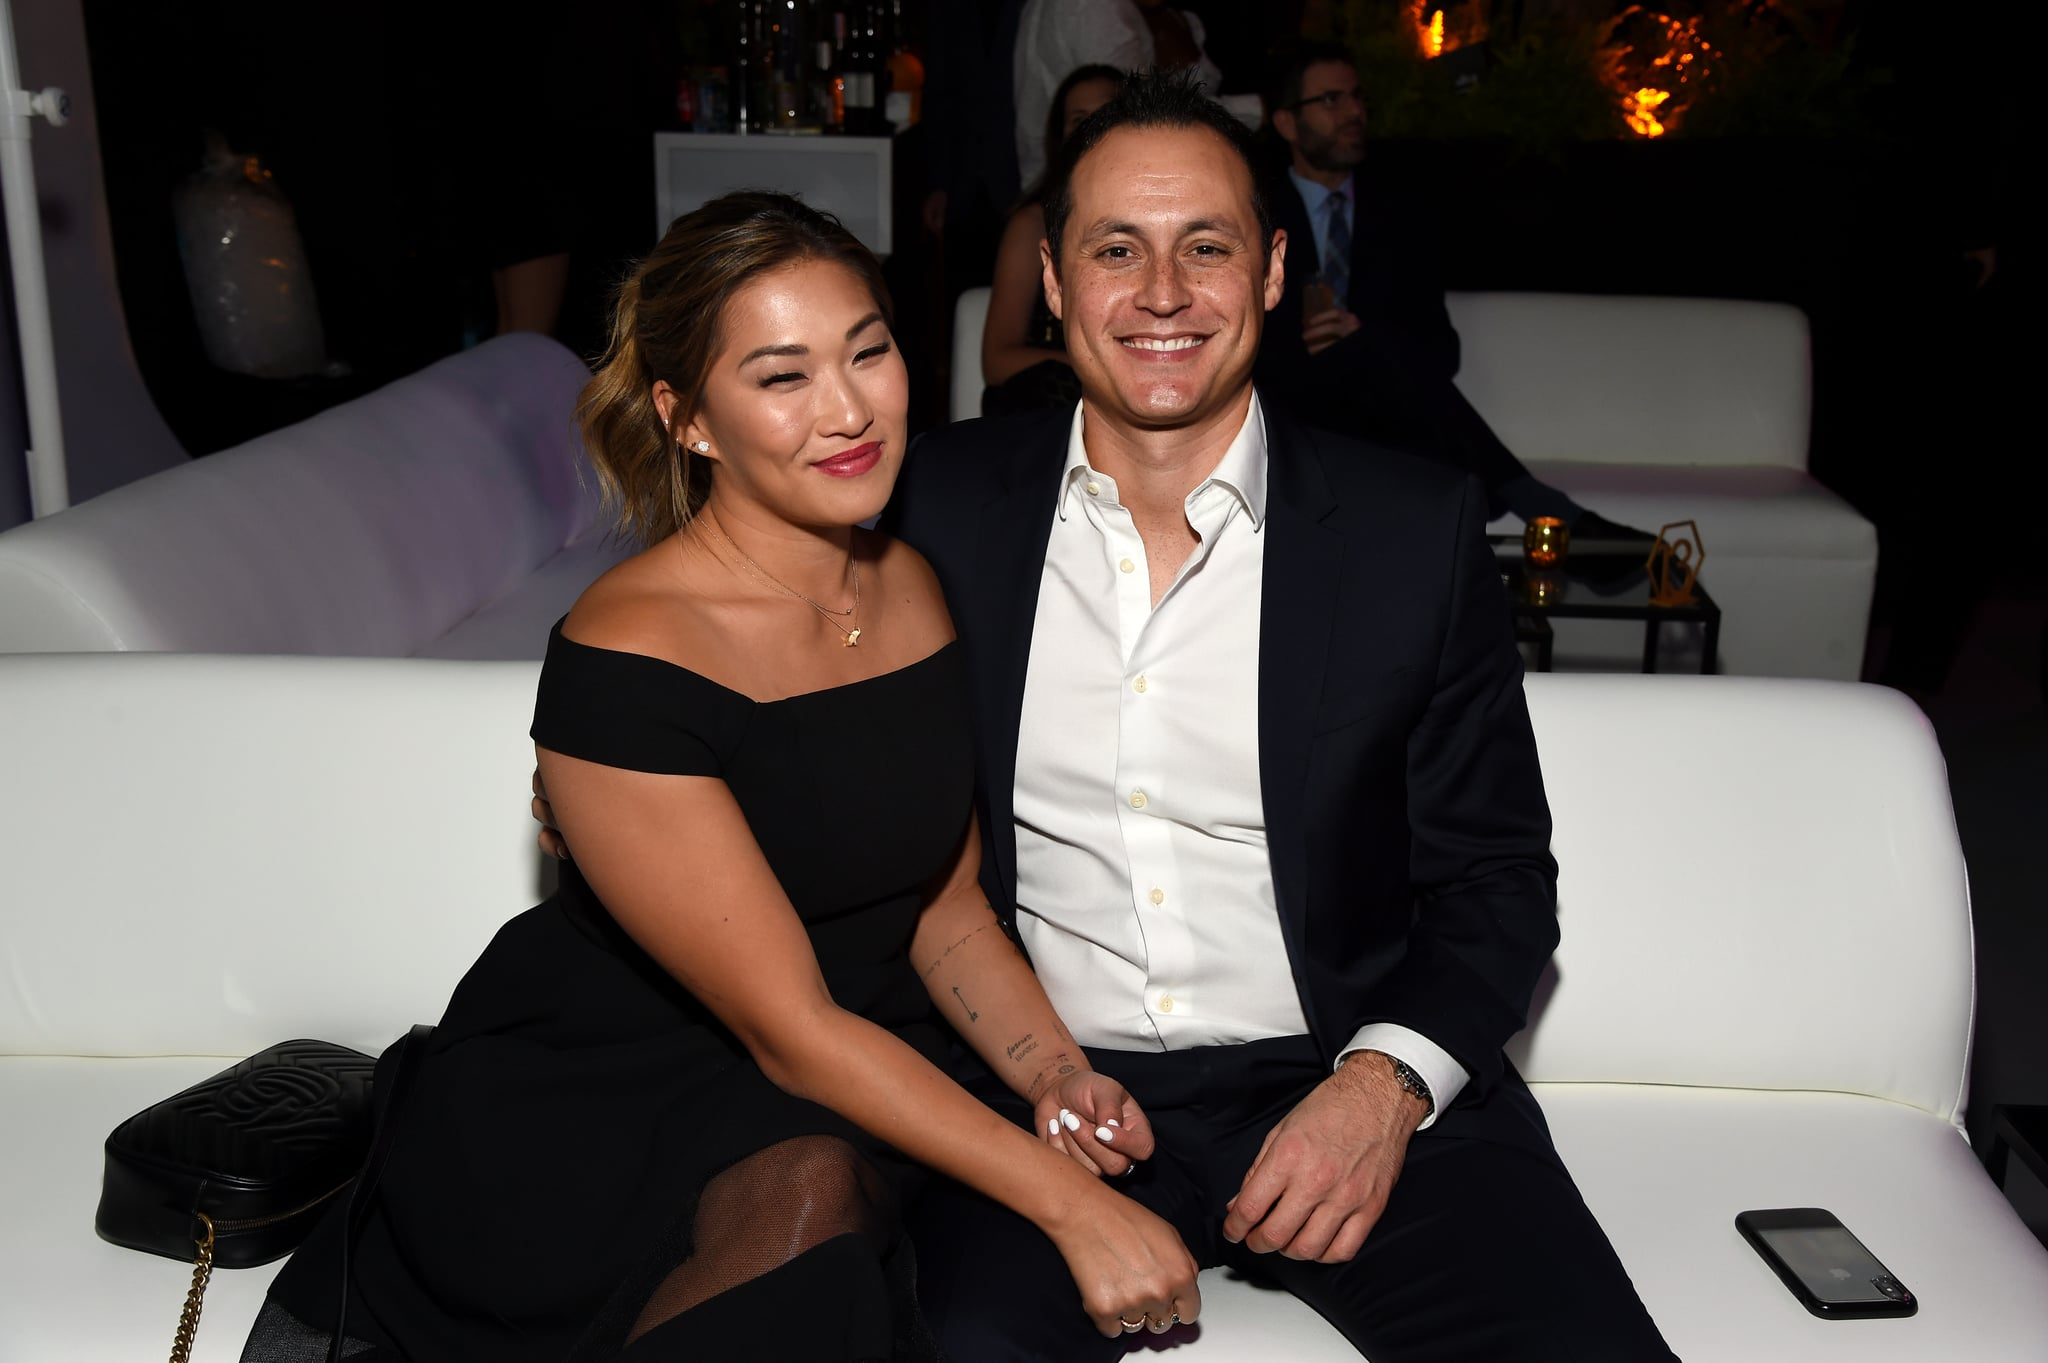 LOS ANGELES, CALIFORNIA - OCTOBER 12: (L-R) Jenna Ushkowitz and David Stanley attend the 5th Adopt Together Baby Ball Gala on October 12, 2019 in Los Angeles, California. (Photo by Michael Kovac/Getty Images for Adopt Together)